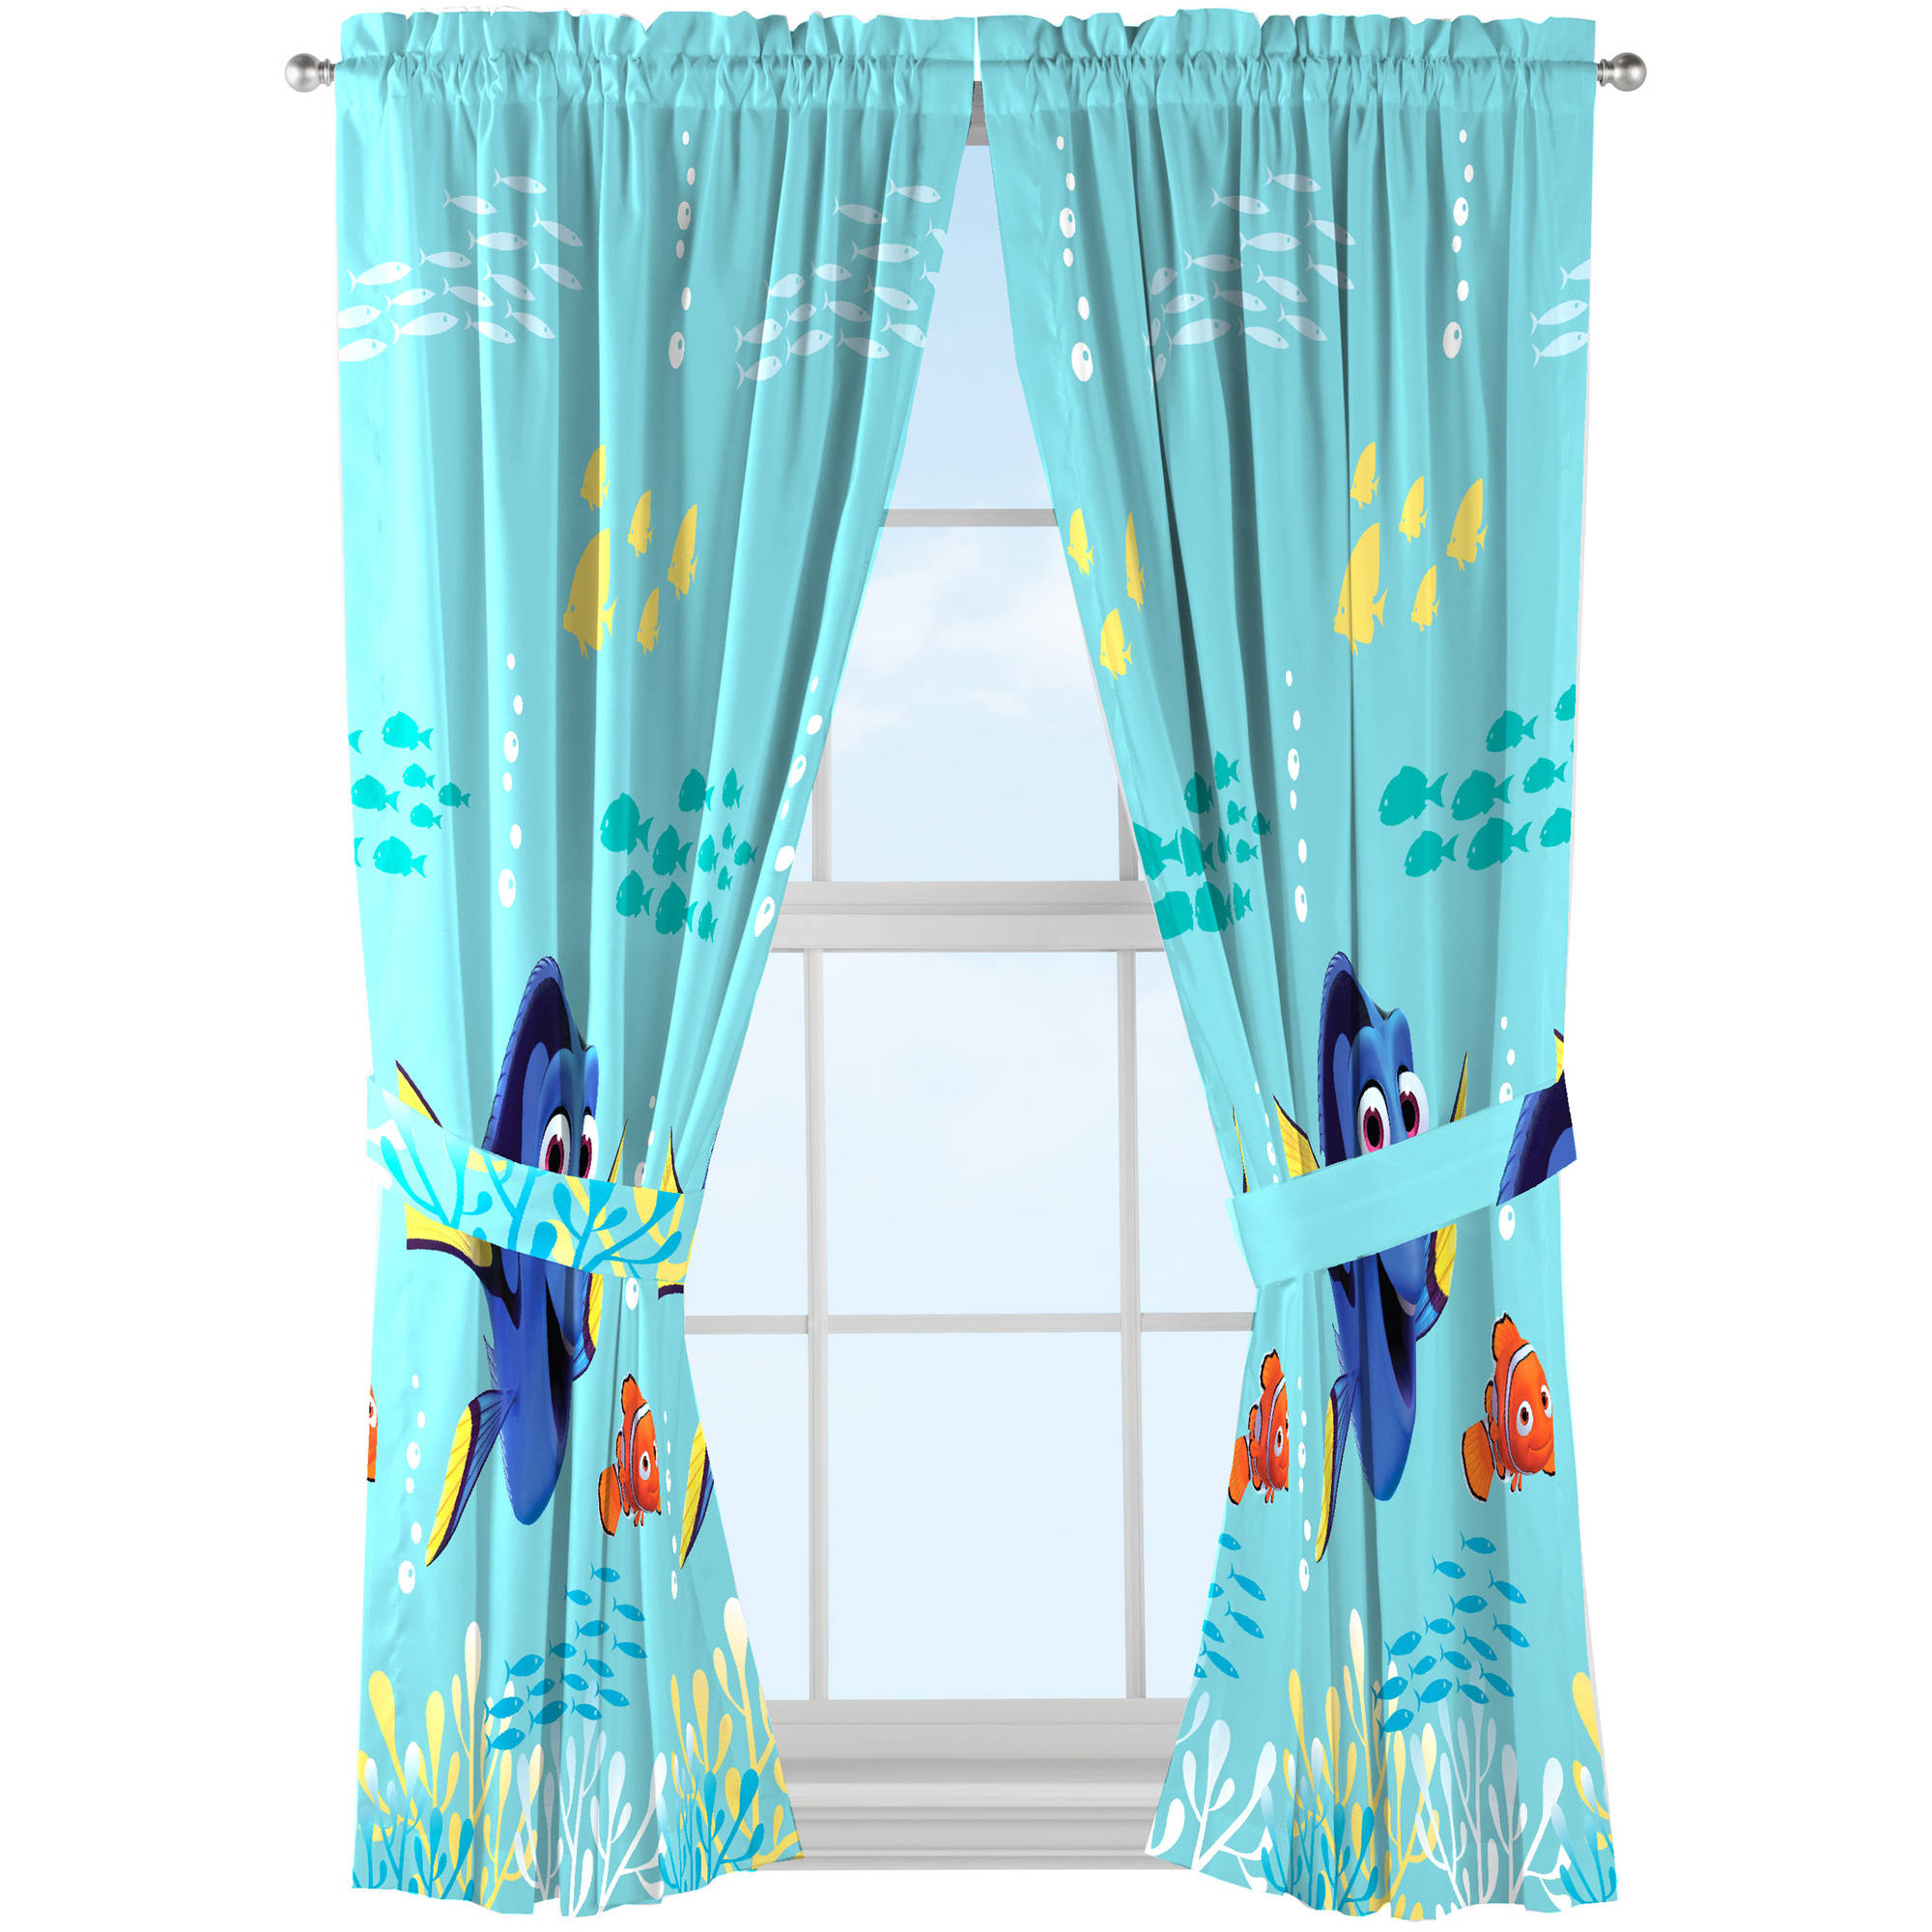 Superbe Disney Finding Dory Kids Bedroom Curtains Set Of 2   Walmart.com